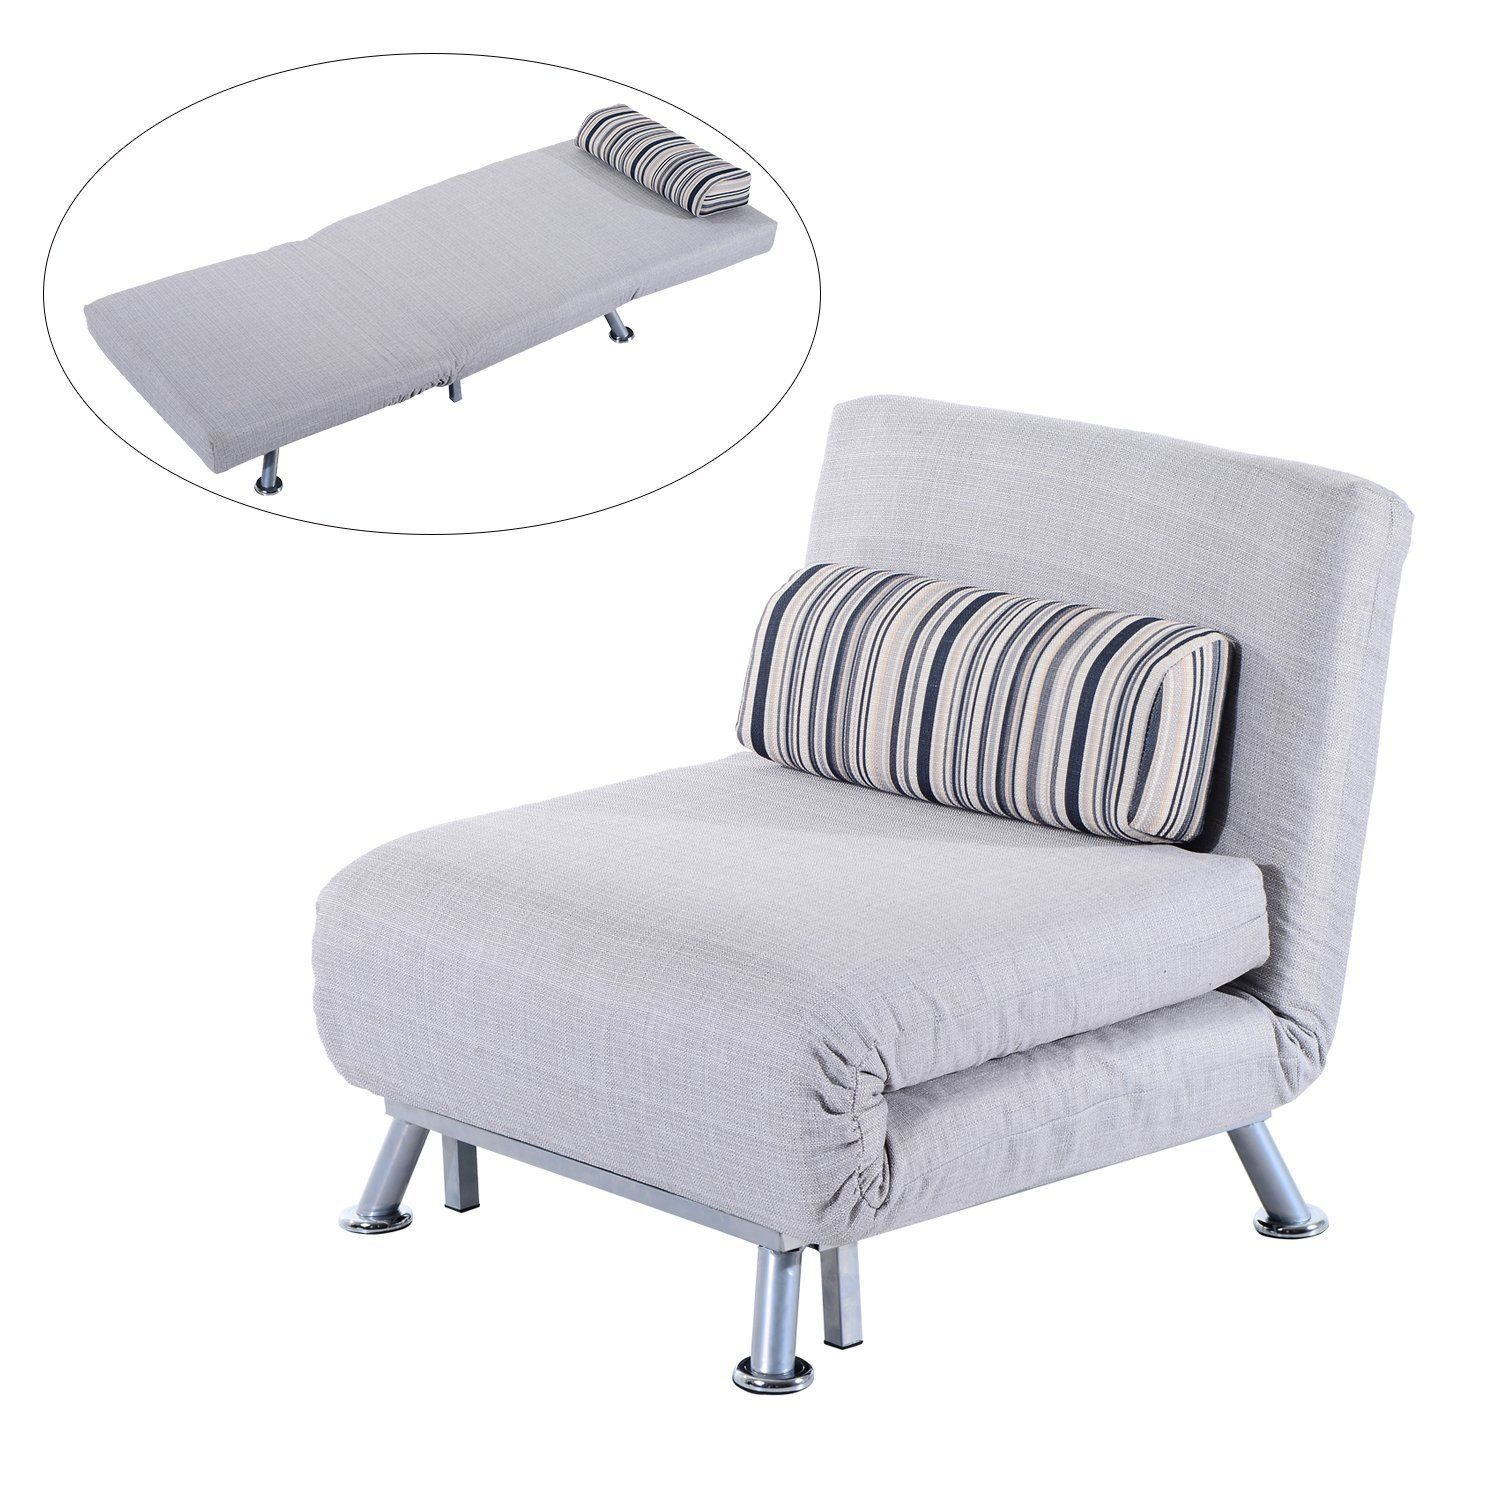 Hom Fold Out Futon Sofa Bed Single Sofa Sleeper Couch Lounger